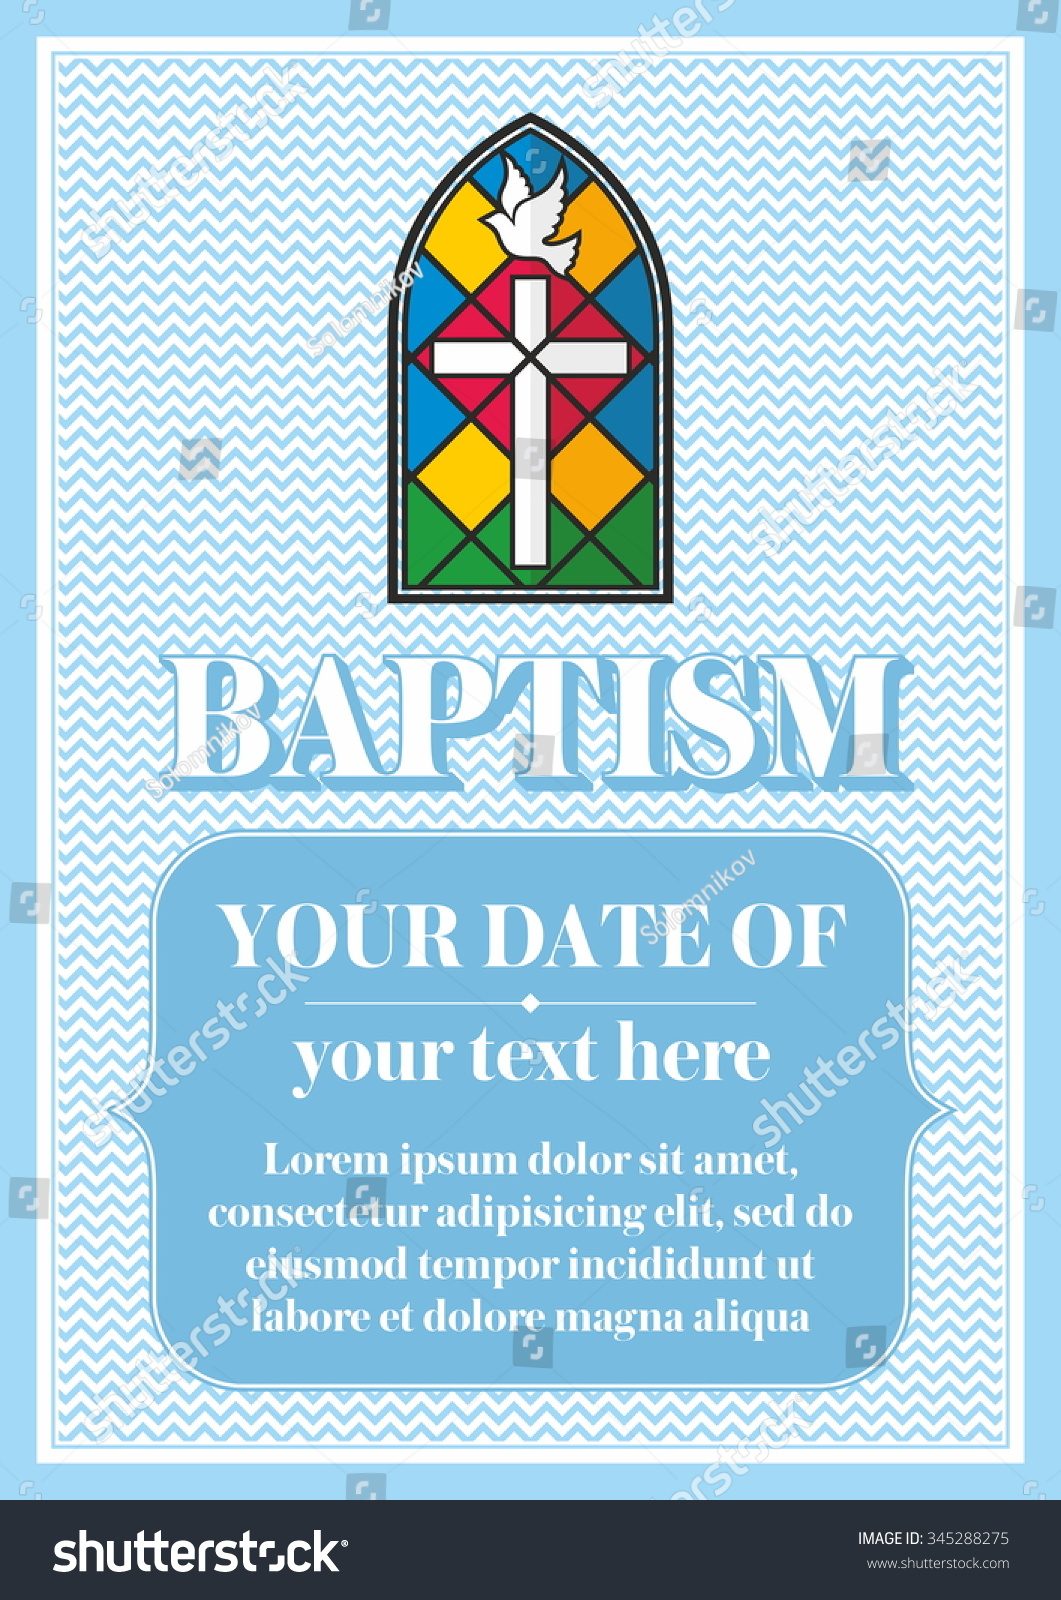 Congratulations certificate template monthly expenditure template congratulations certificate template religious flyer letter of stock vector postcard christian baptism invitation congratulation certificate 345288275 pronofoot35fo Choice Image